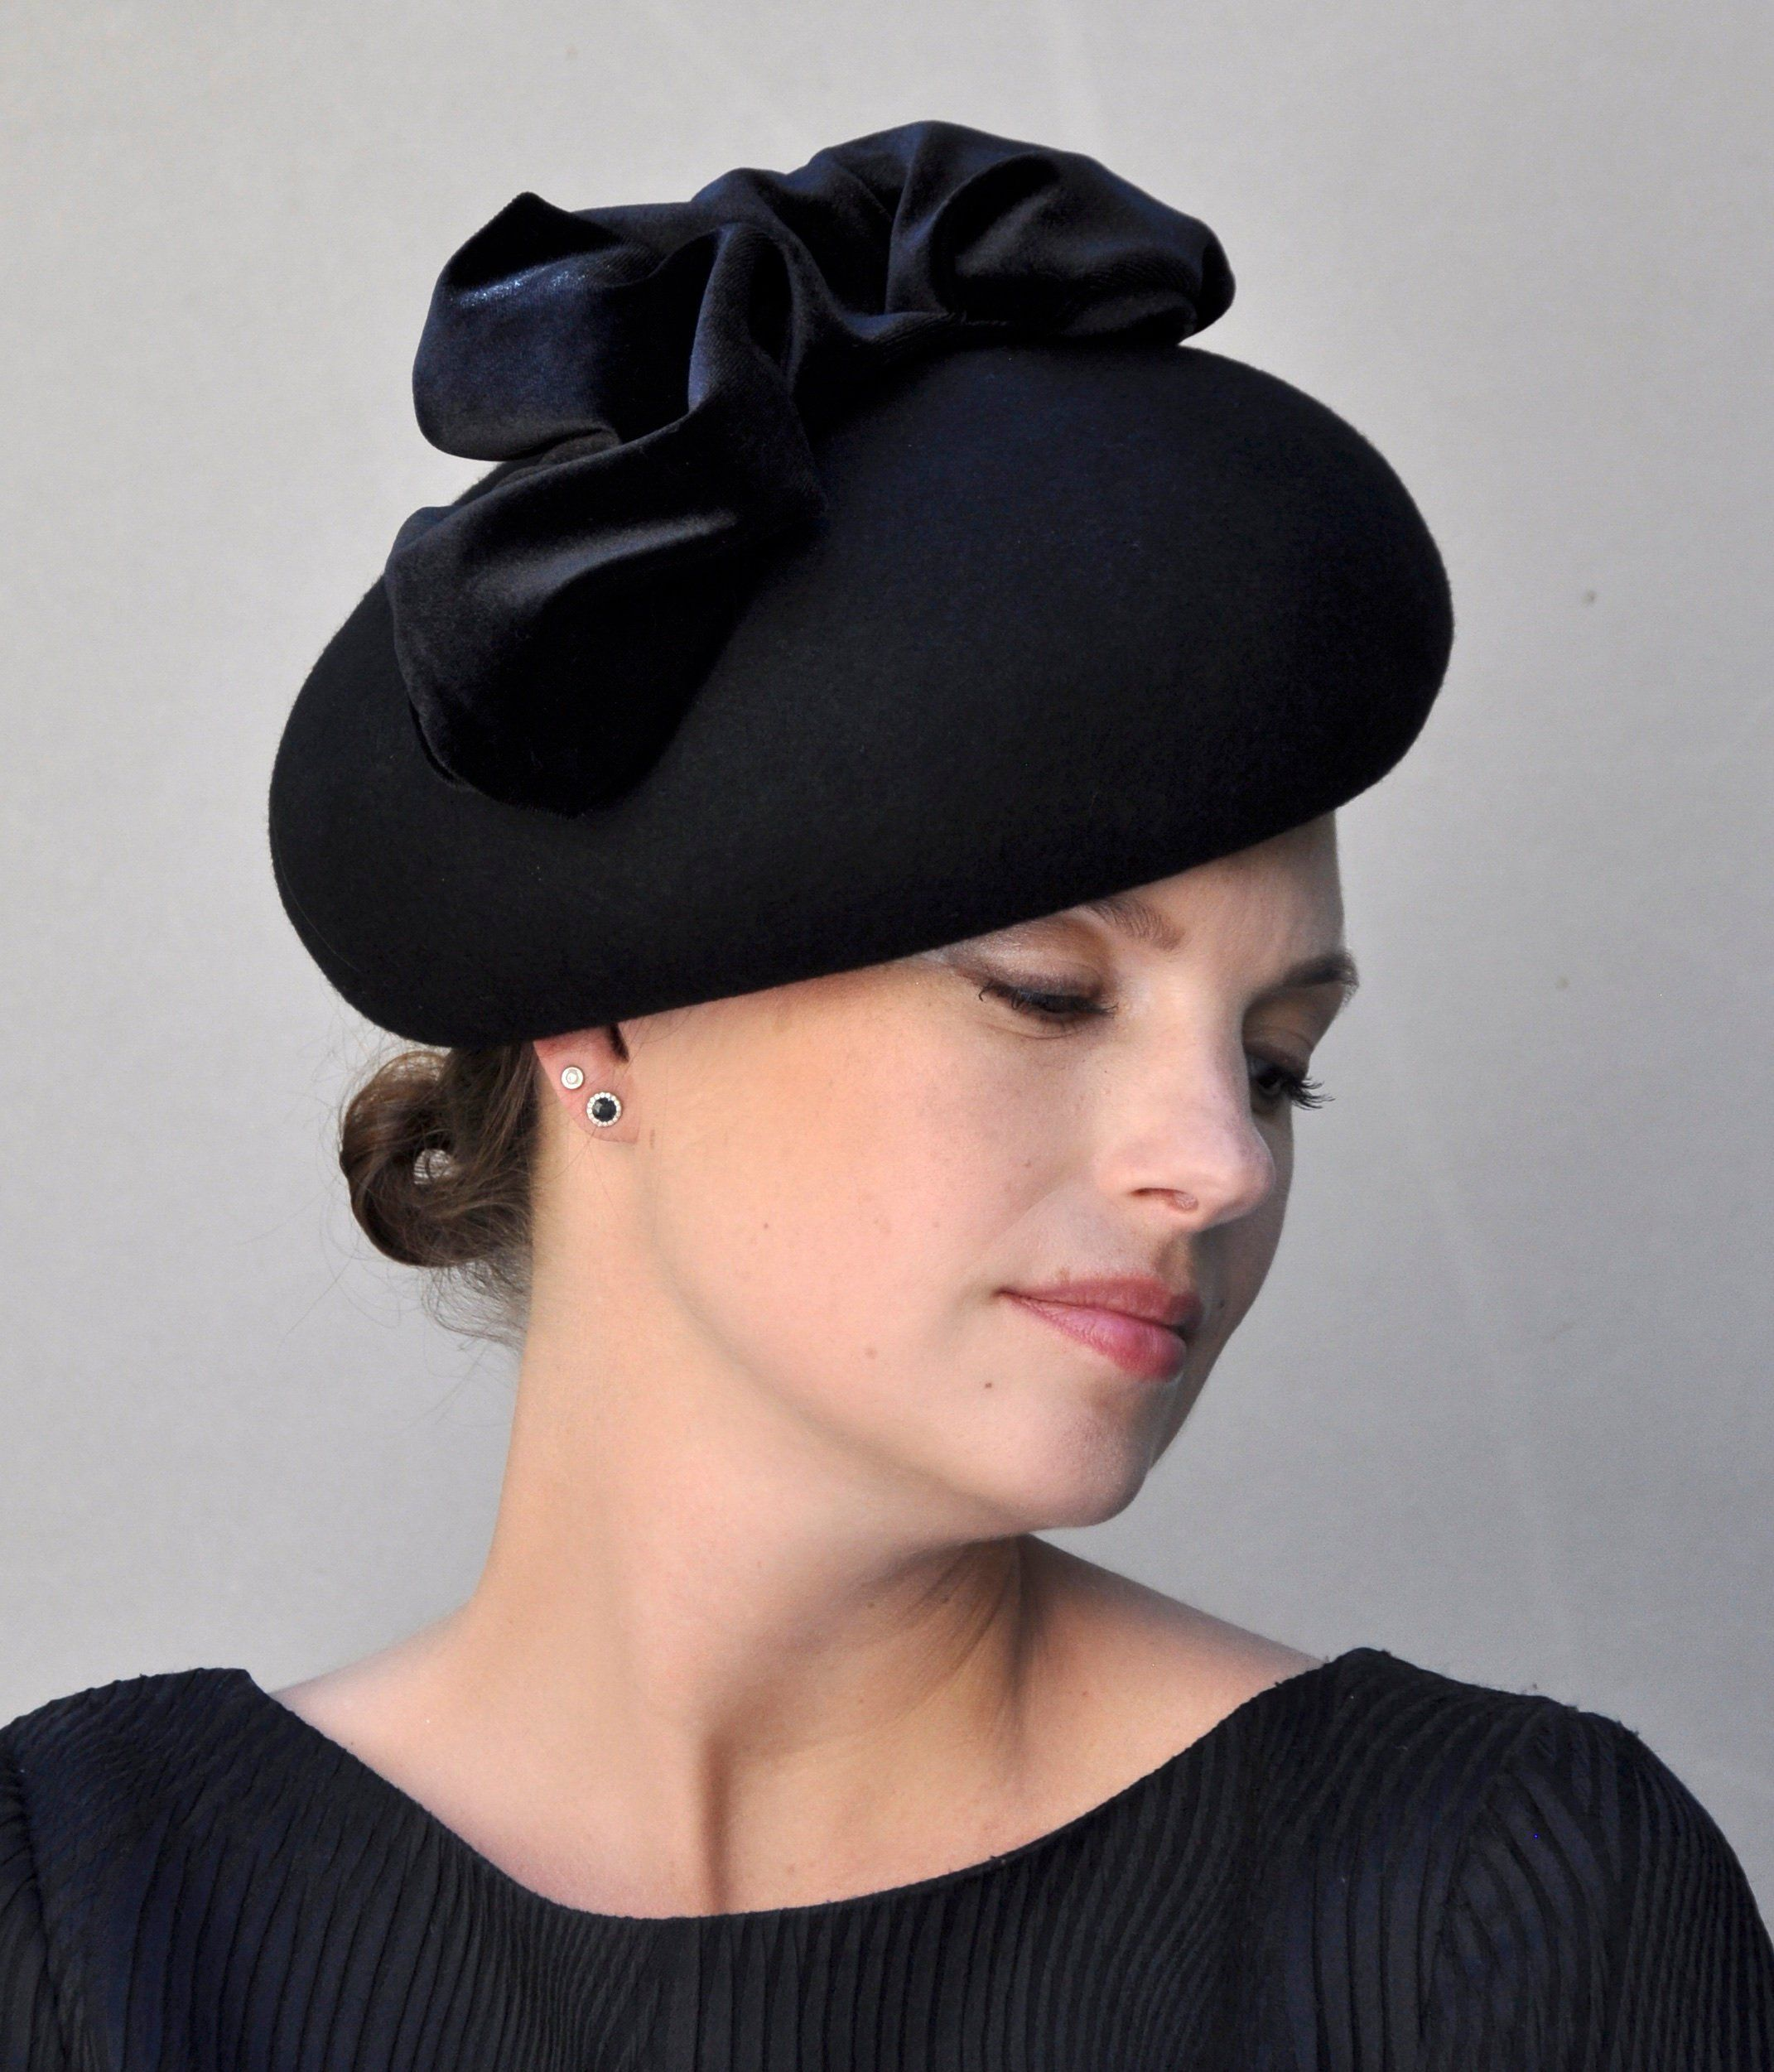 a4c68589 Women's Black Hat. Ladies Black Hat, Formal Hat, Formal Winter Hat, Church  Hat, Funeral Hat, Mourning Hat